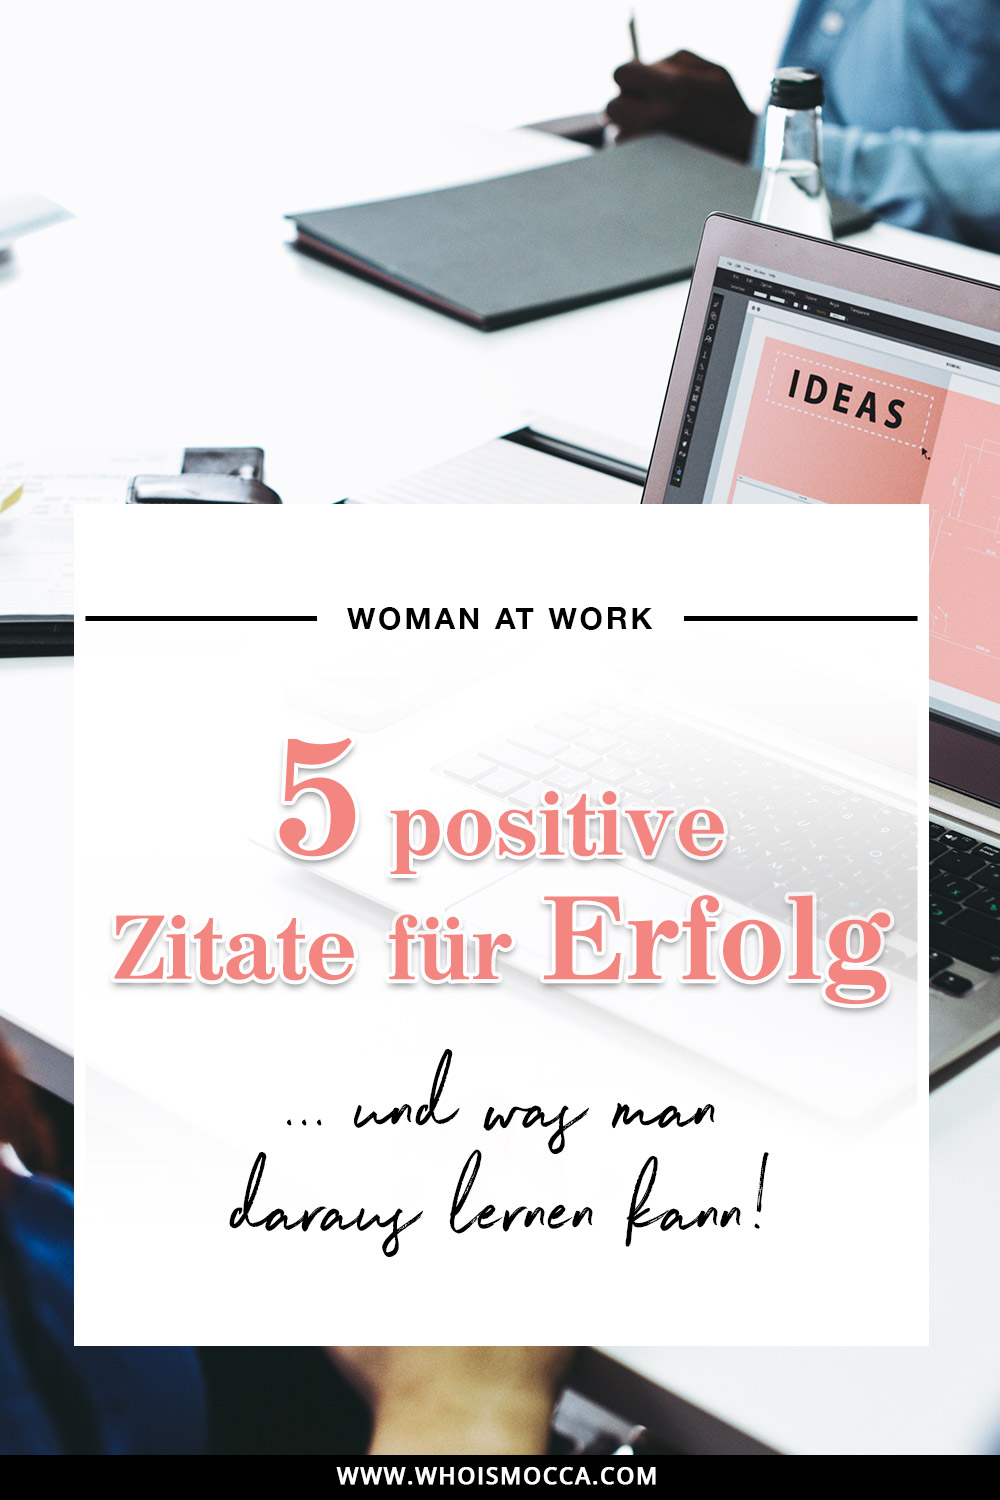 5 positive Zitate für erfolgreiche Menschen im Job, Karriere Blog, Woman At Work, Zitate für erfolgreiche Unternehmer, quotations, Business Blog, Online Business, Fashion Blog, Style Blog, www.whoismocca.com